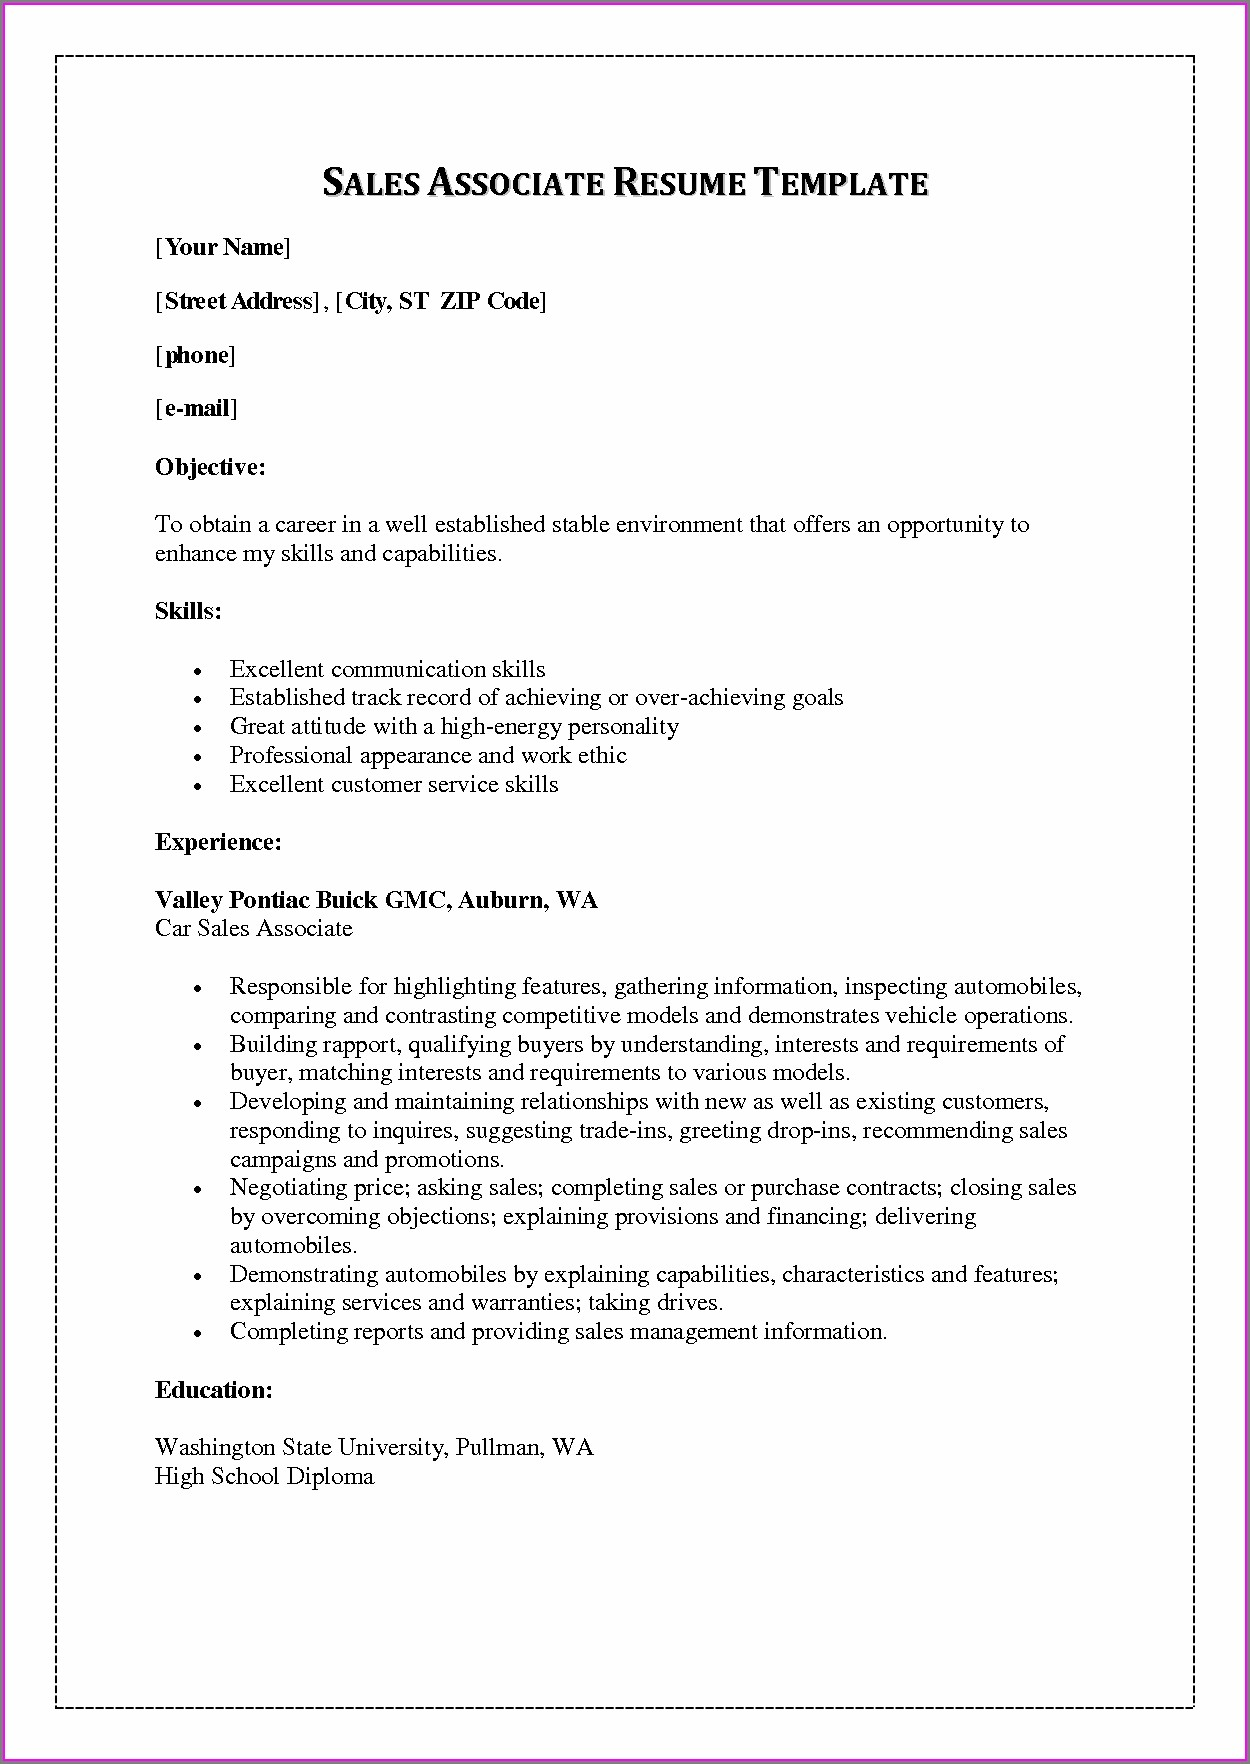 Free Sales Professional Resume Templates